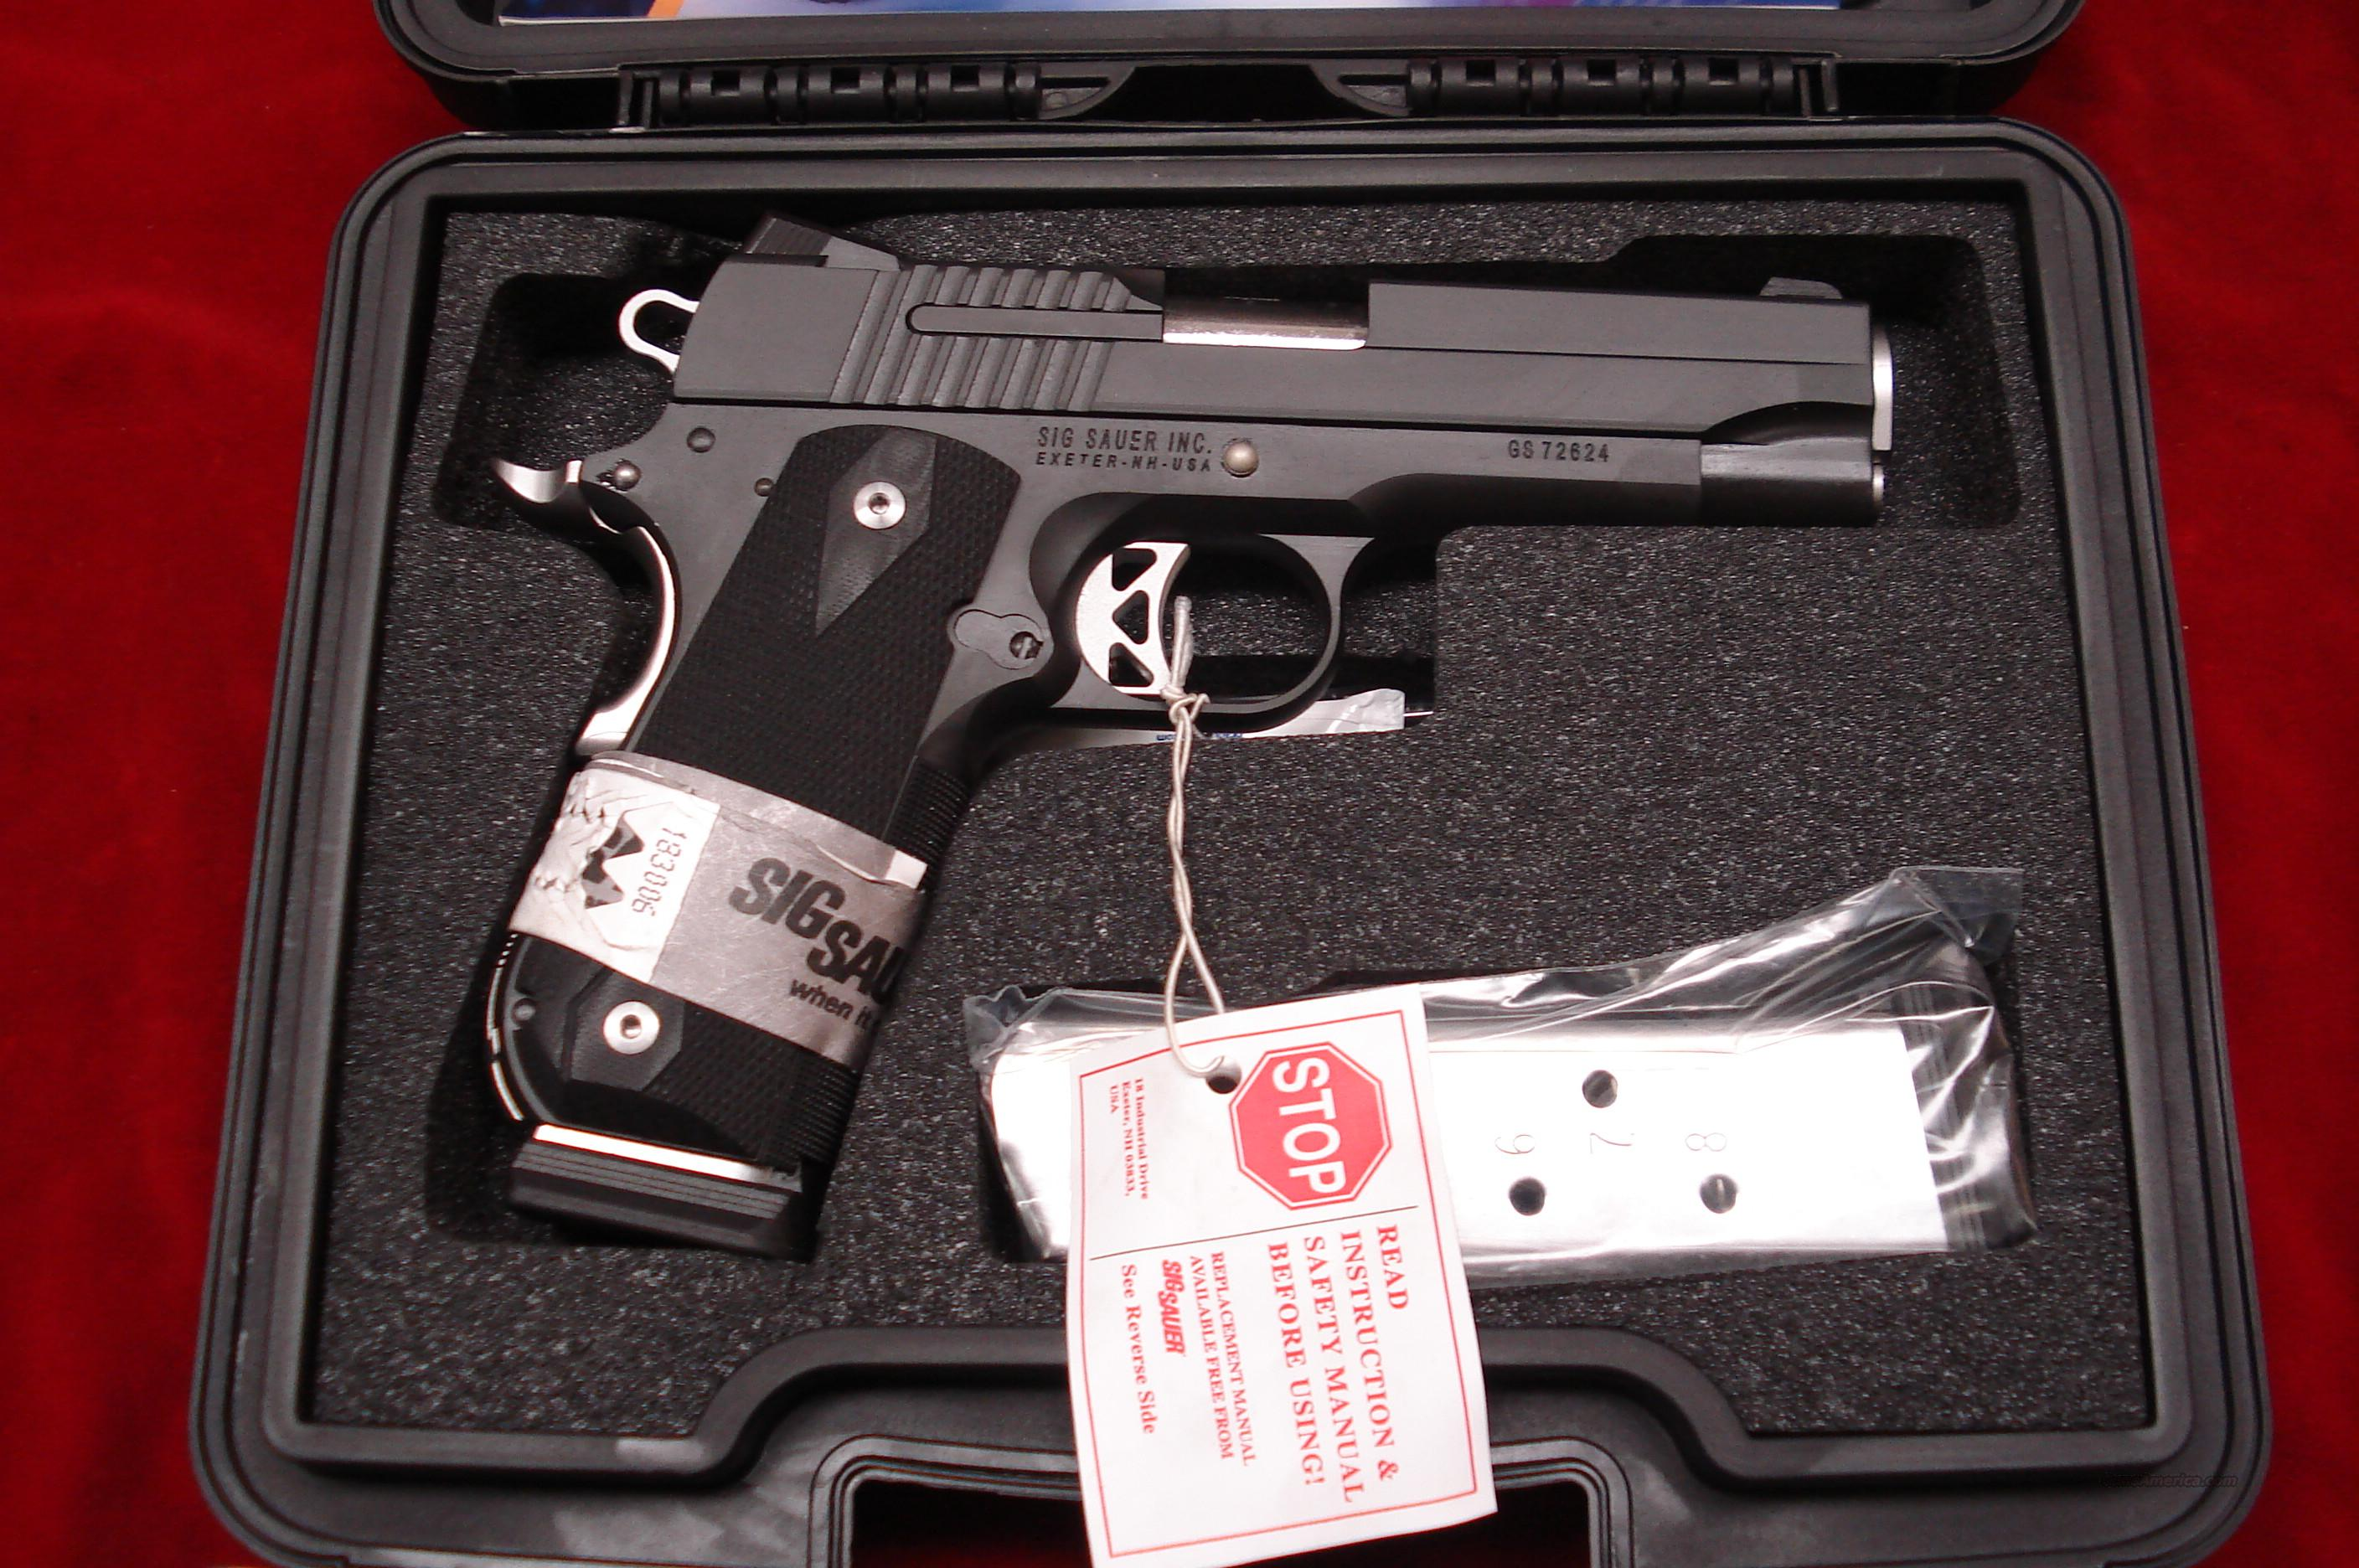 SIG SAUER  1911 FAST BACK NIGHTMARE 45ACP WITH NIGHT SIGHTS NEW   Guns > Pistols > Sig - Sauer/Sigarms Pistols > 1911